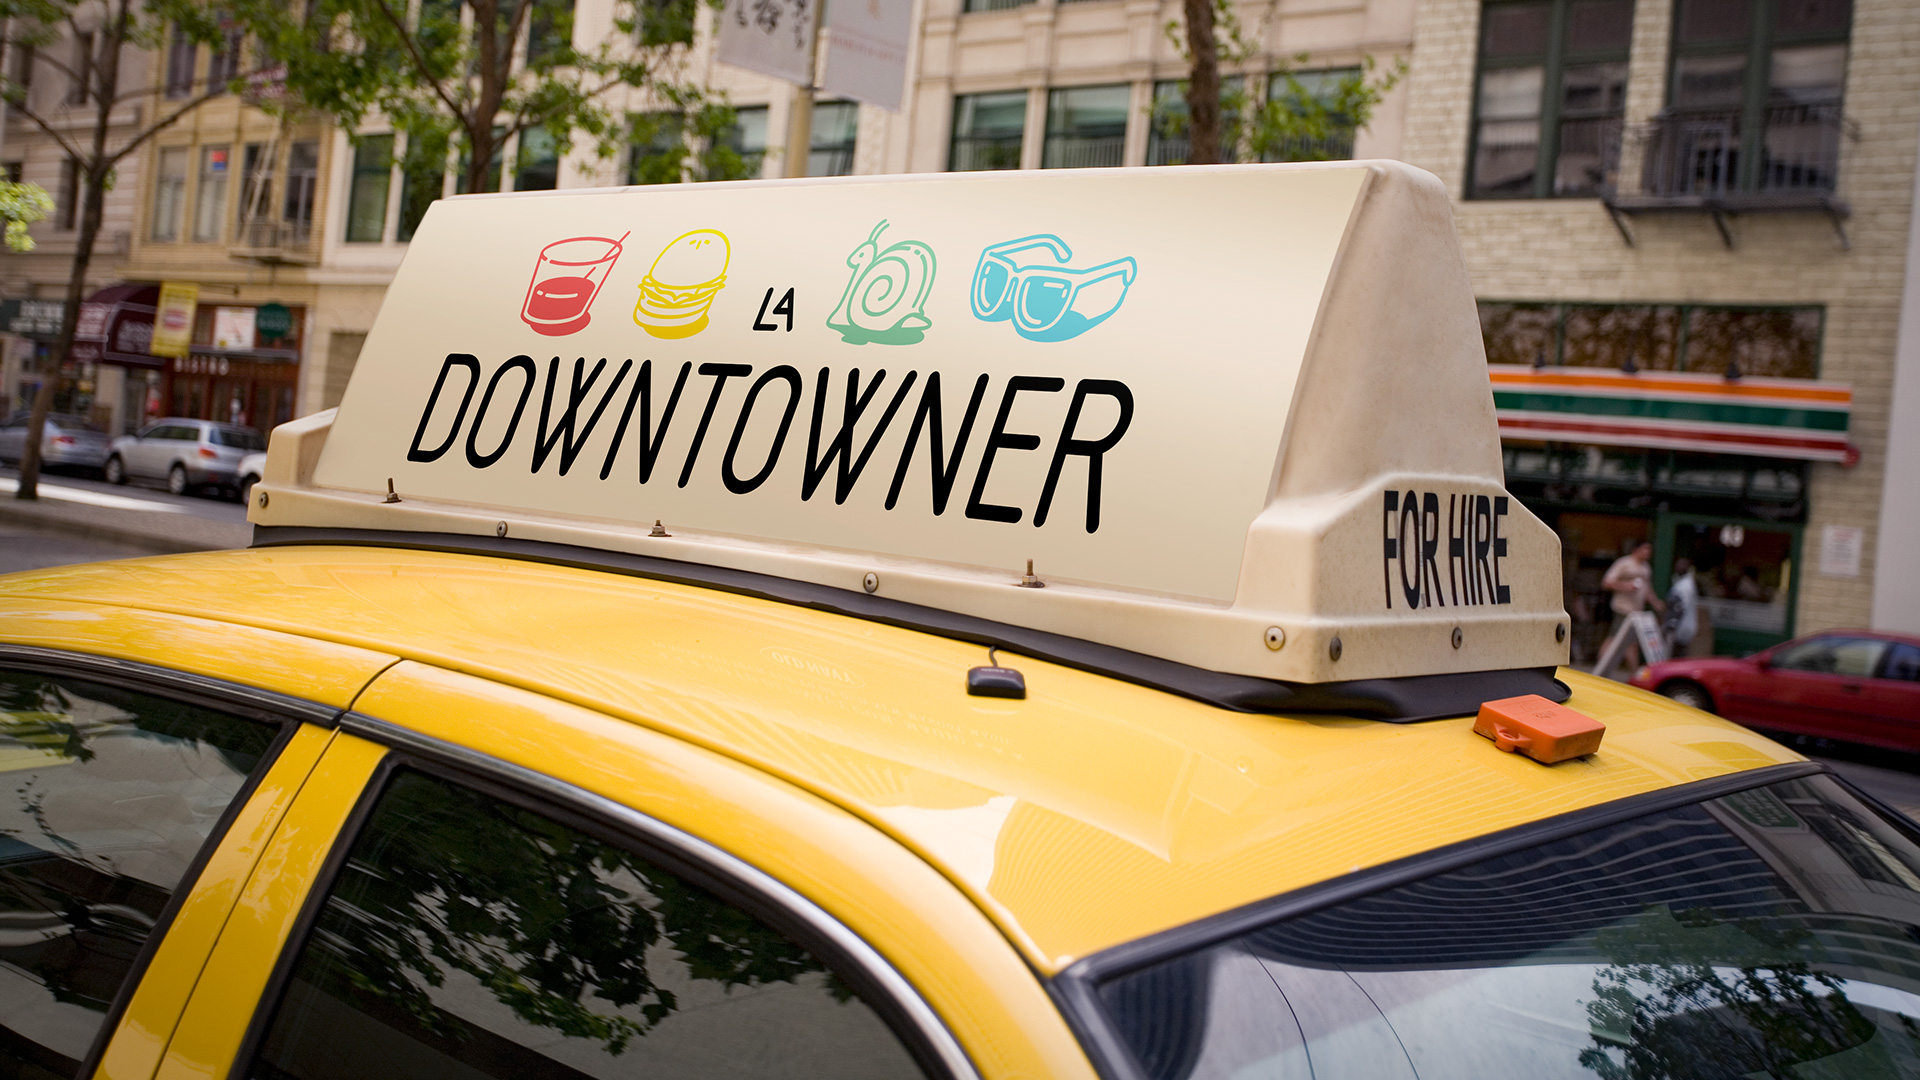 ladowntowner_02_taxi-1